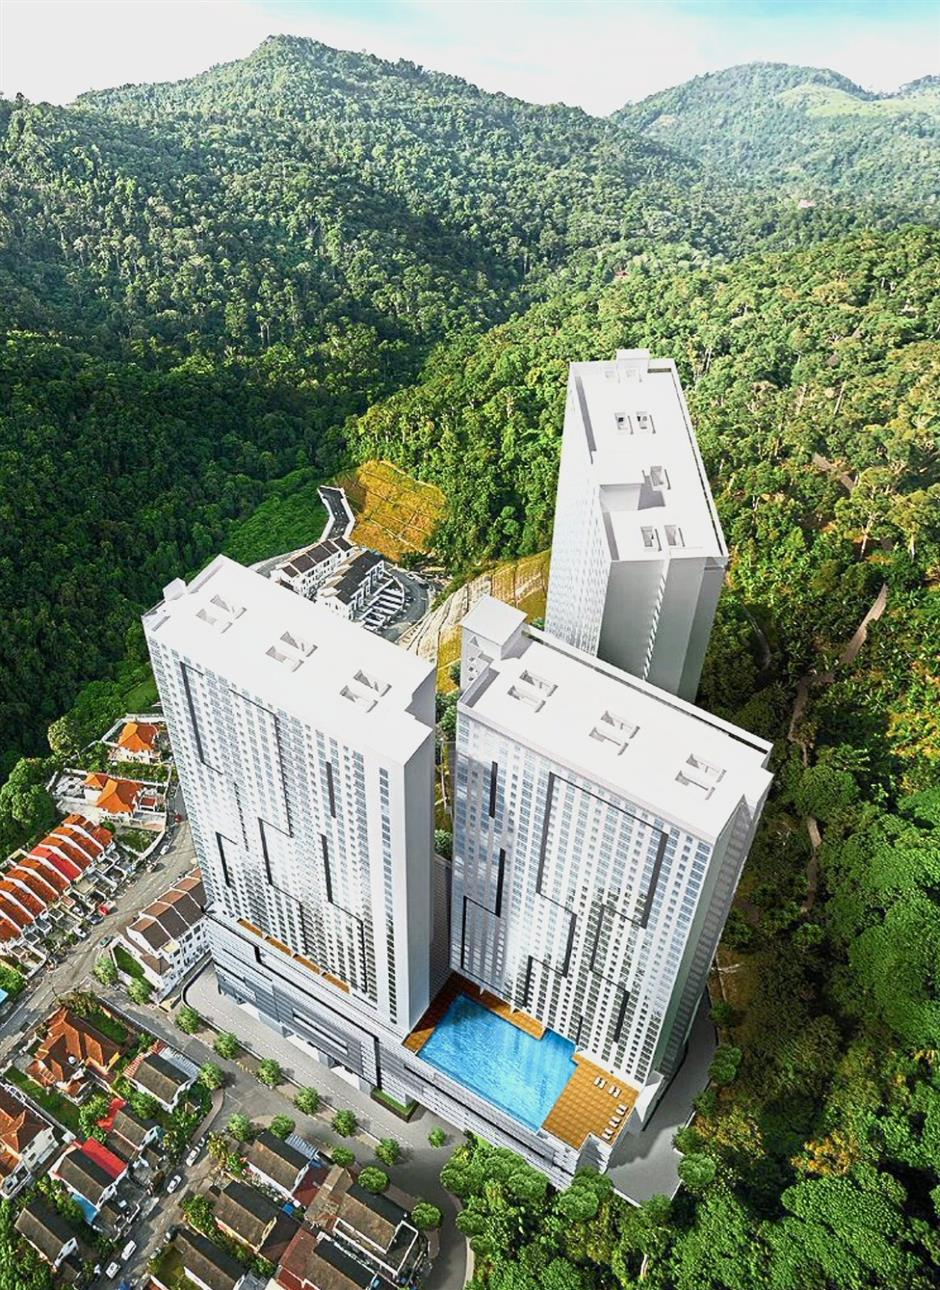 An artist's impression of the TREE0 affordable homes by Hunza Group at Sungai Ara in Penang.